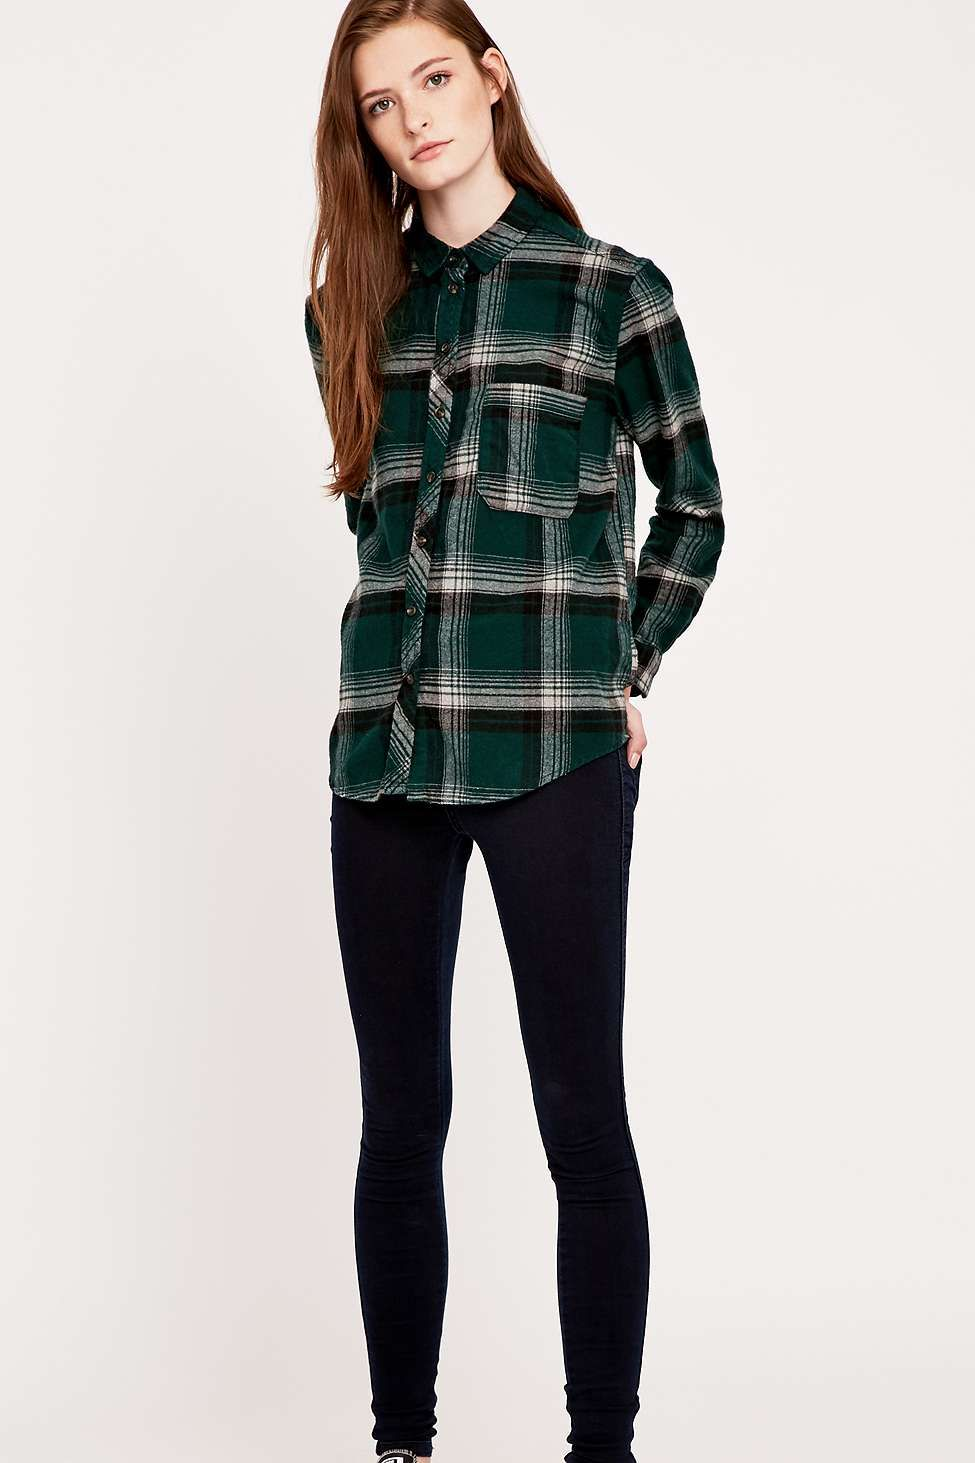 Flannel with shirt underneath  BDG Olly Dylan Plaid Shirt  Plaid Latest styles and Urban outfitters